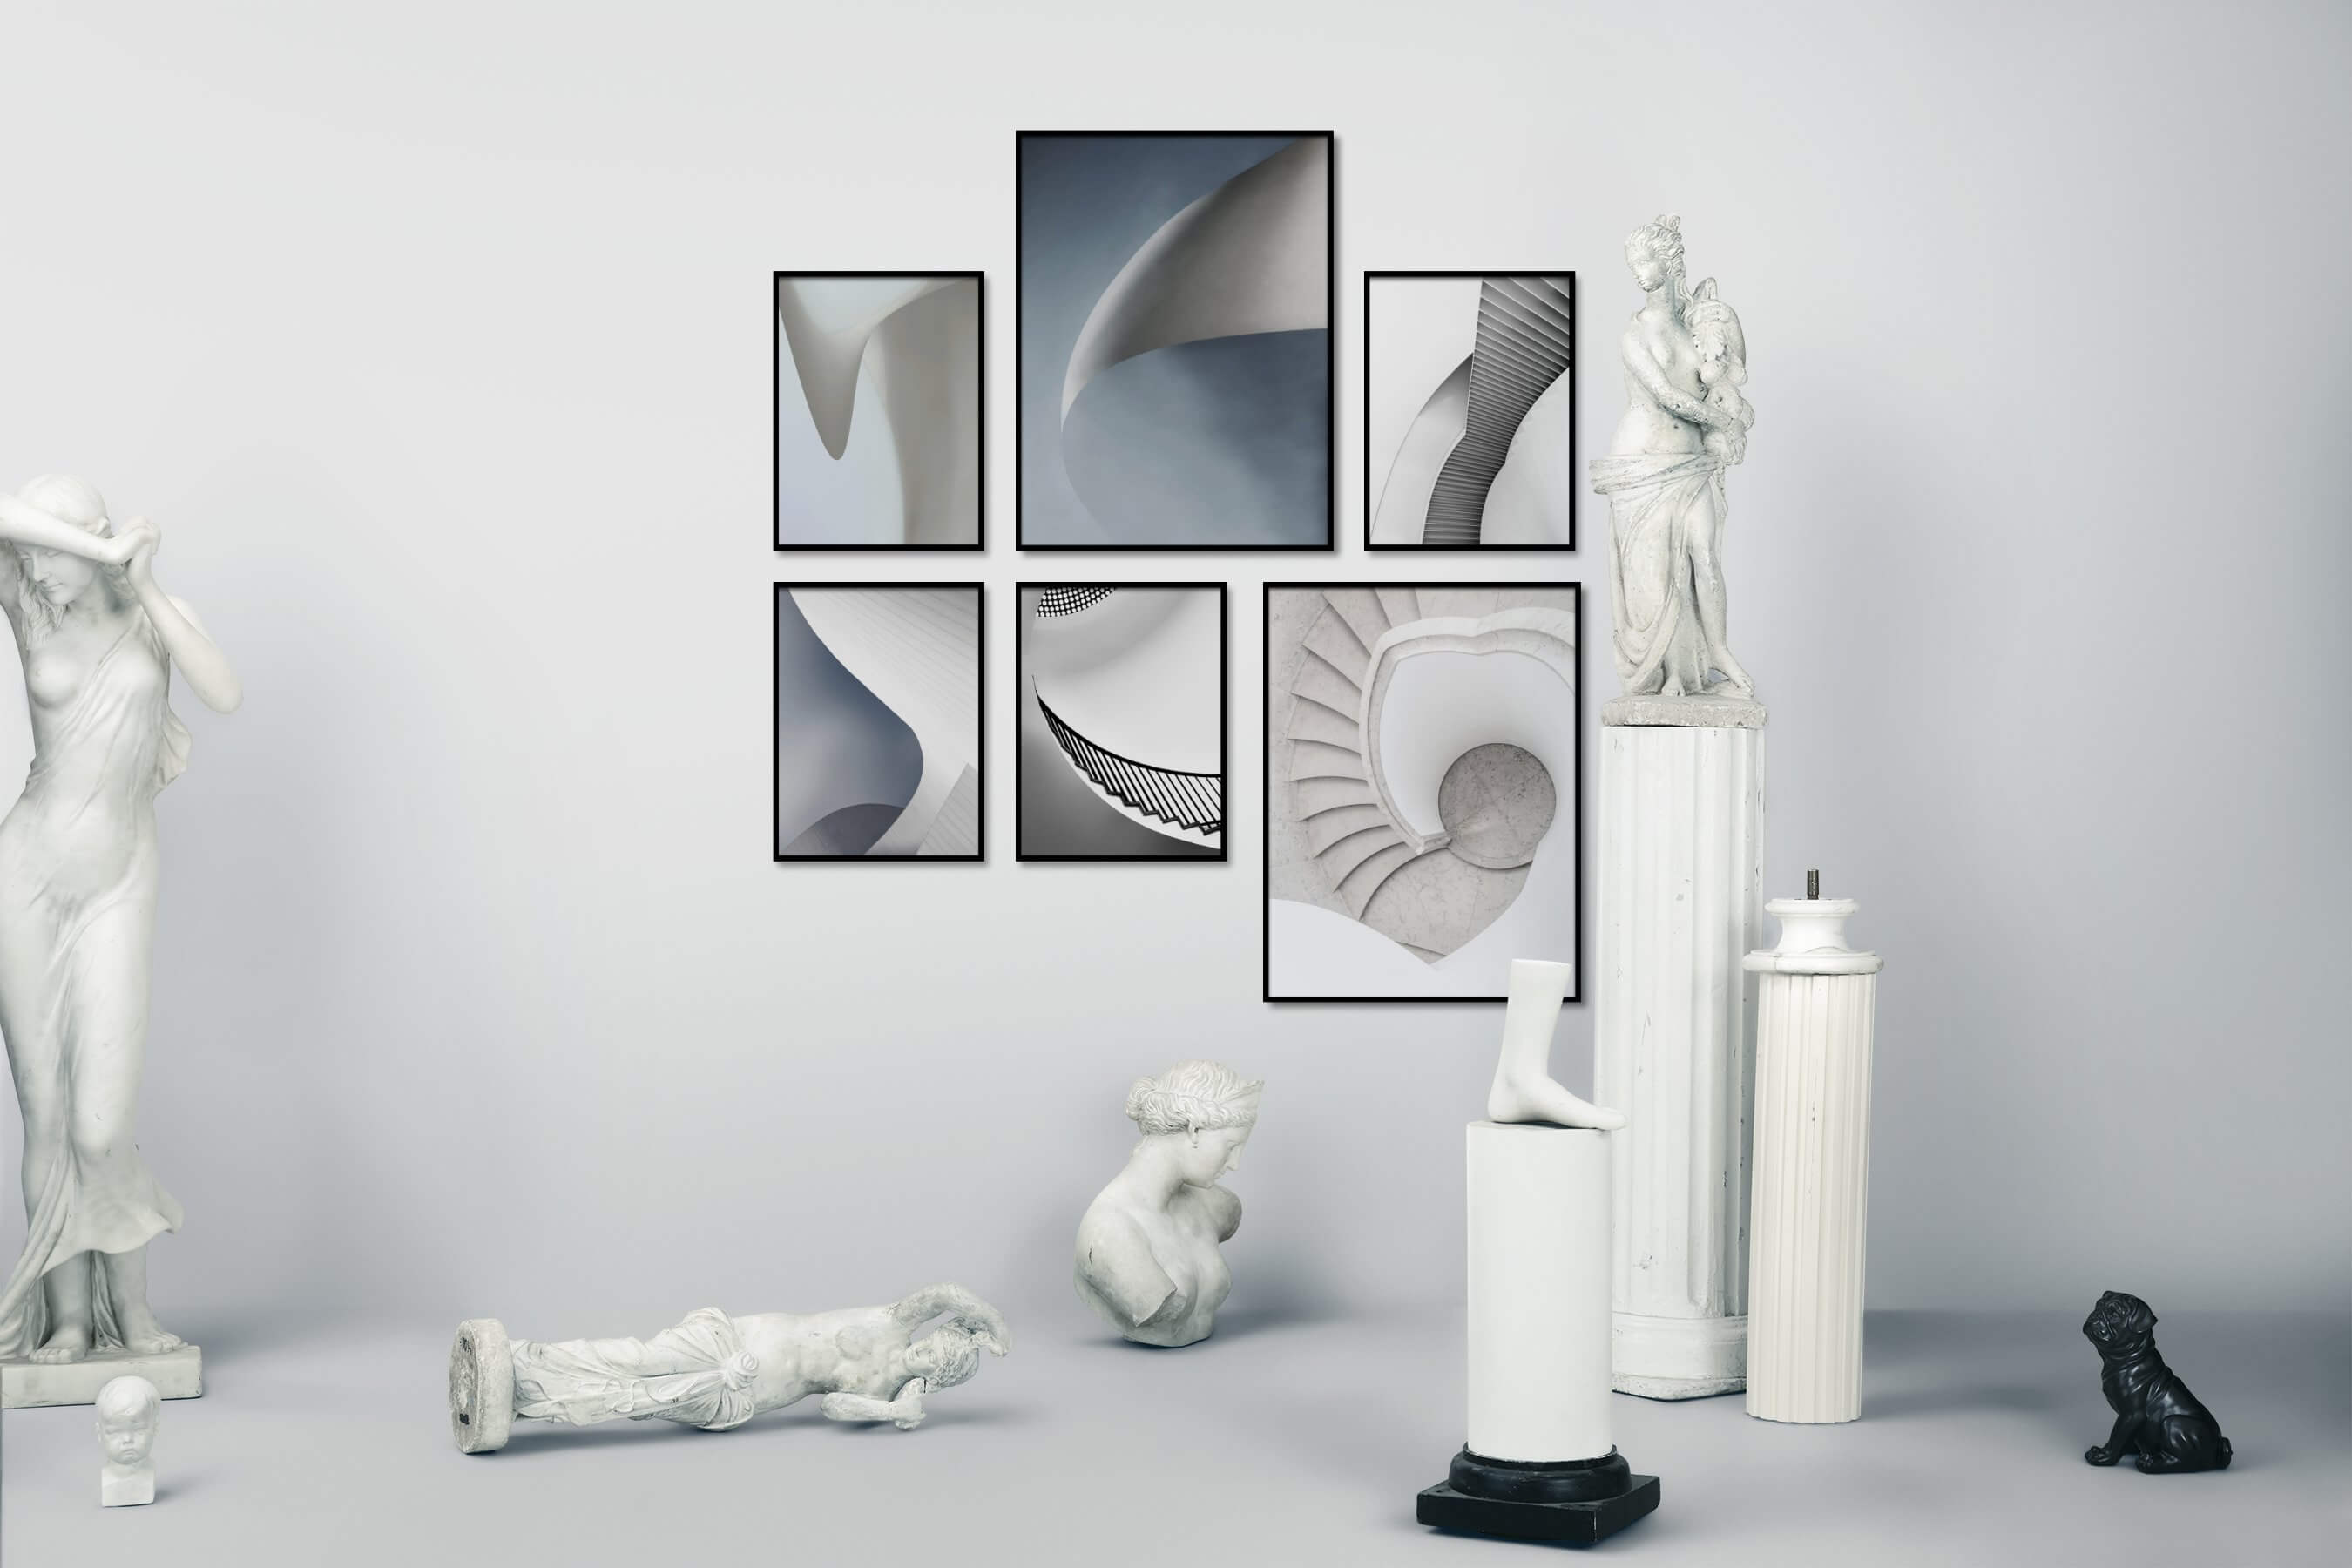 Gallery wall idea with six framed pictures arranged on a wall depicting For the Minimalist, Black & White, and For the Moderate